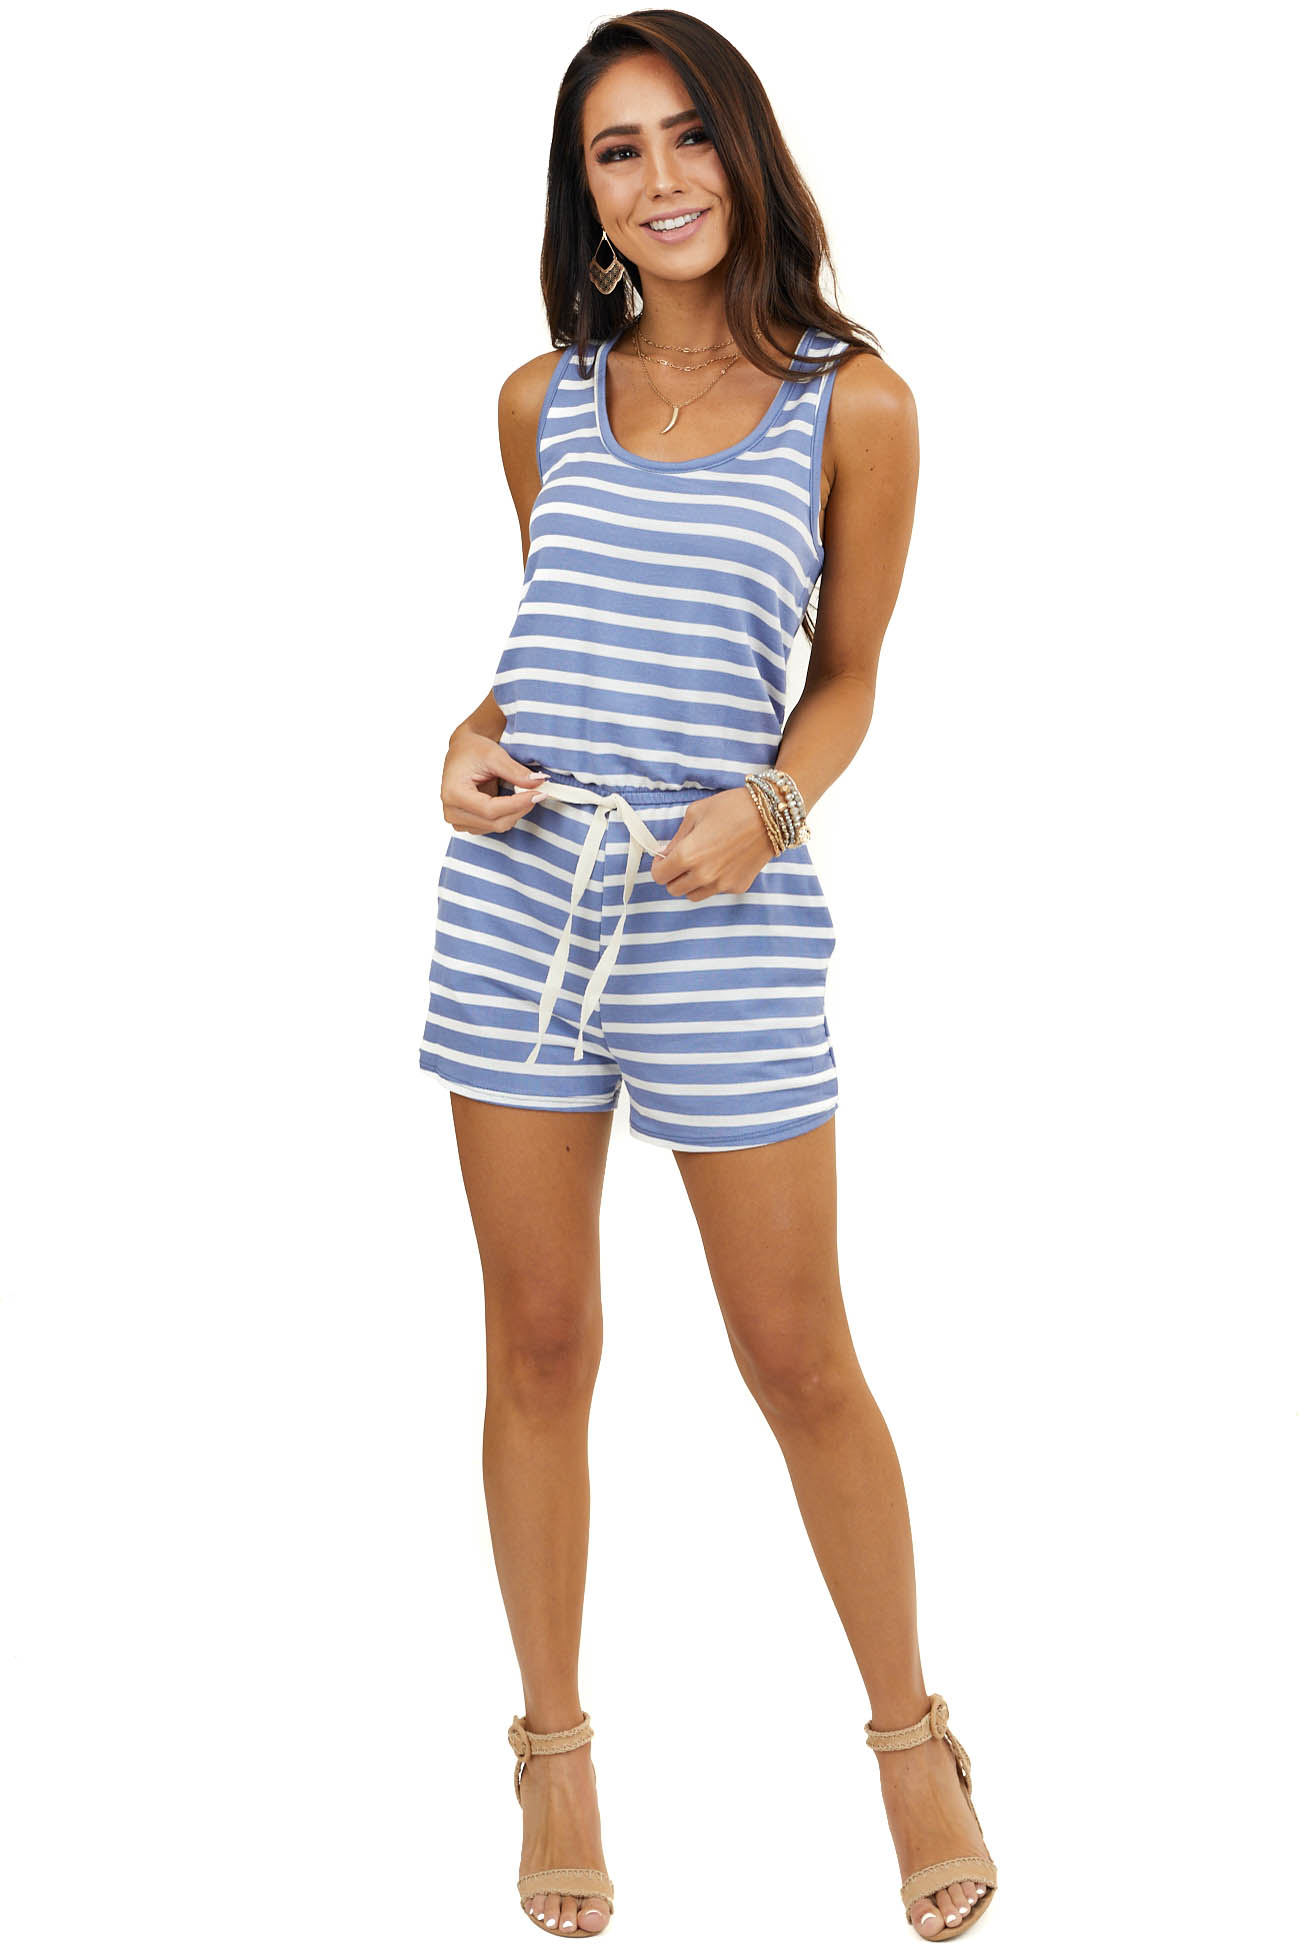 Cornflower and Off White Striped Sleeveless Romper with Tie